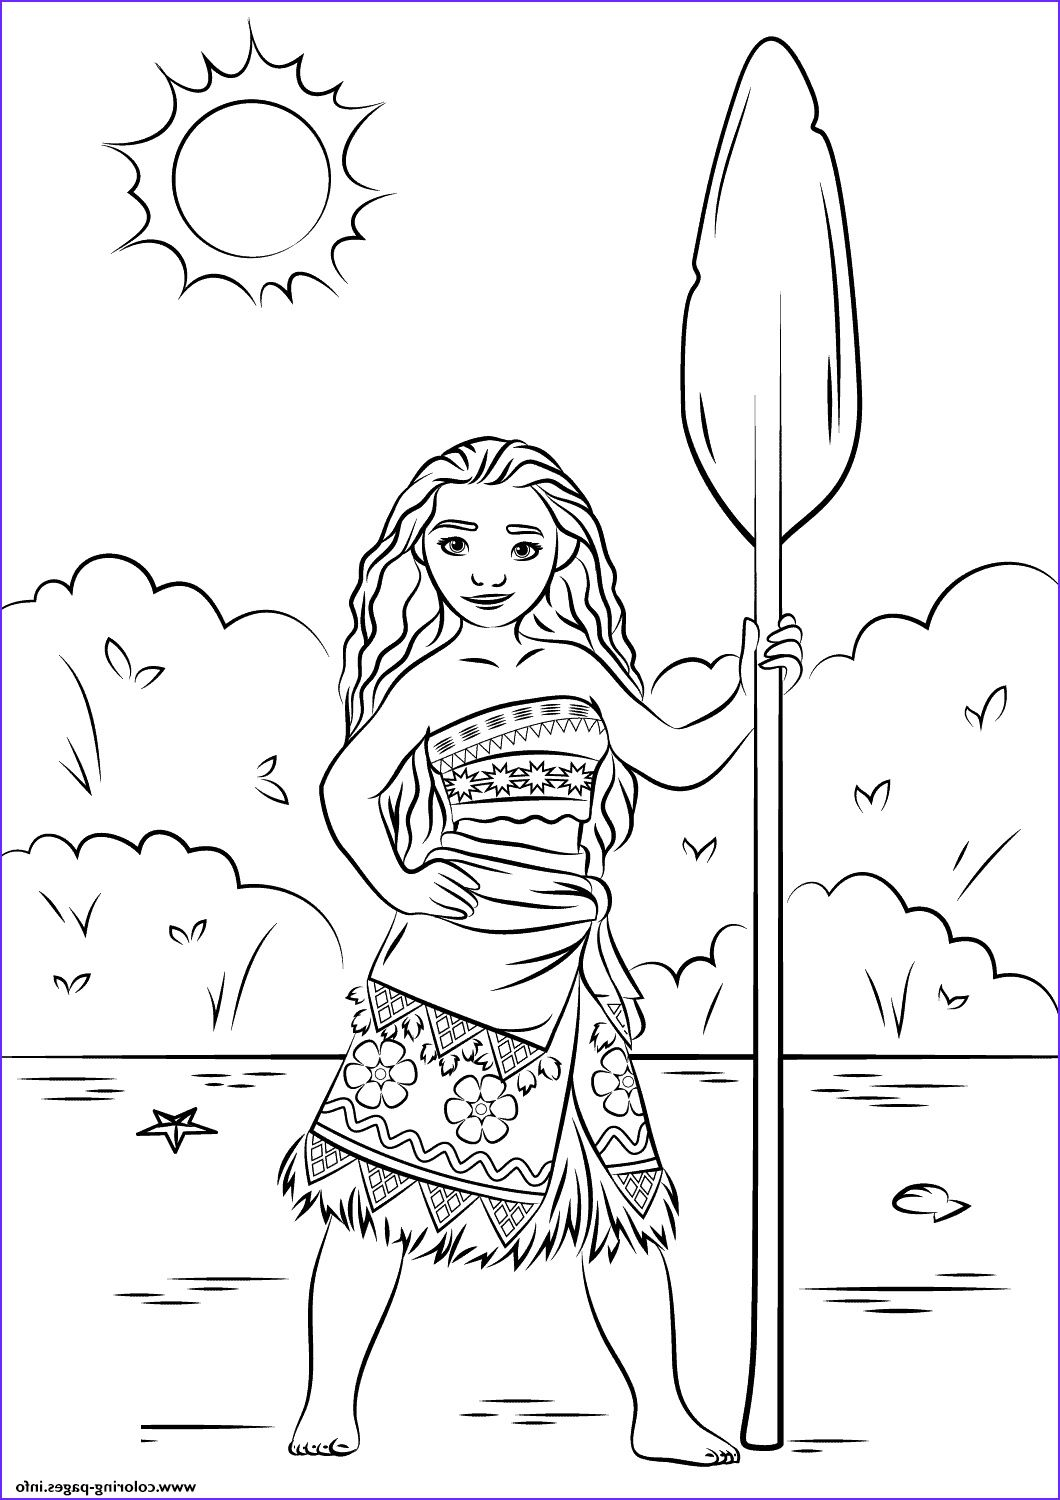 14 Awesome Moana Coloring Pages Disney Photos Moana Coloring Pages Princess Coloring Pages Moana Coloring